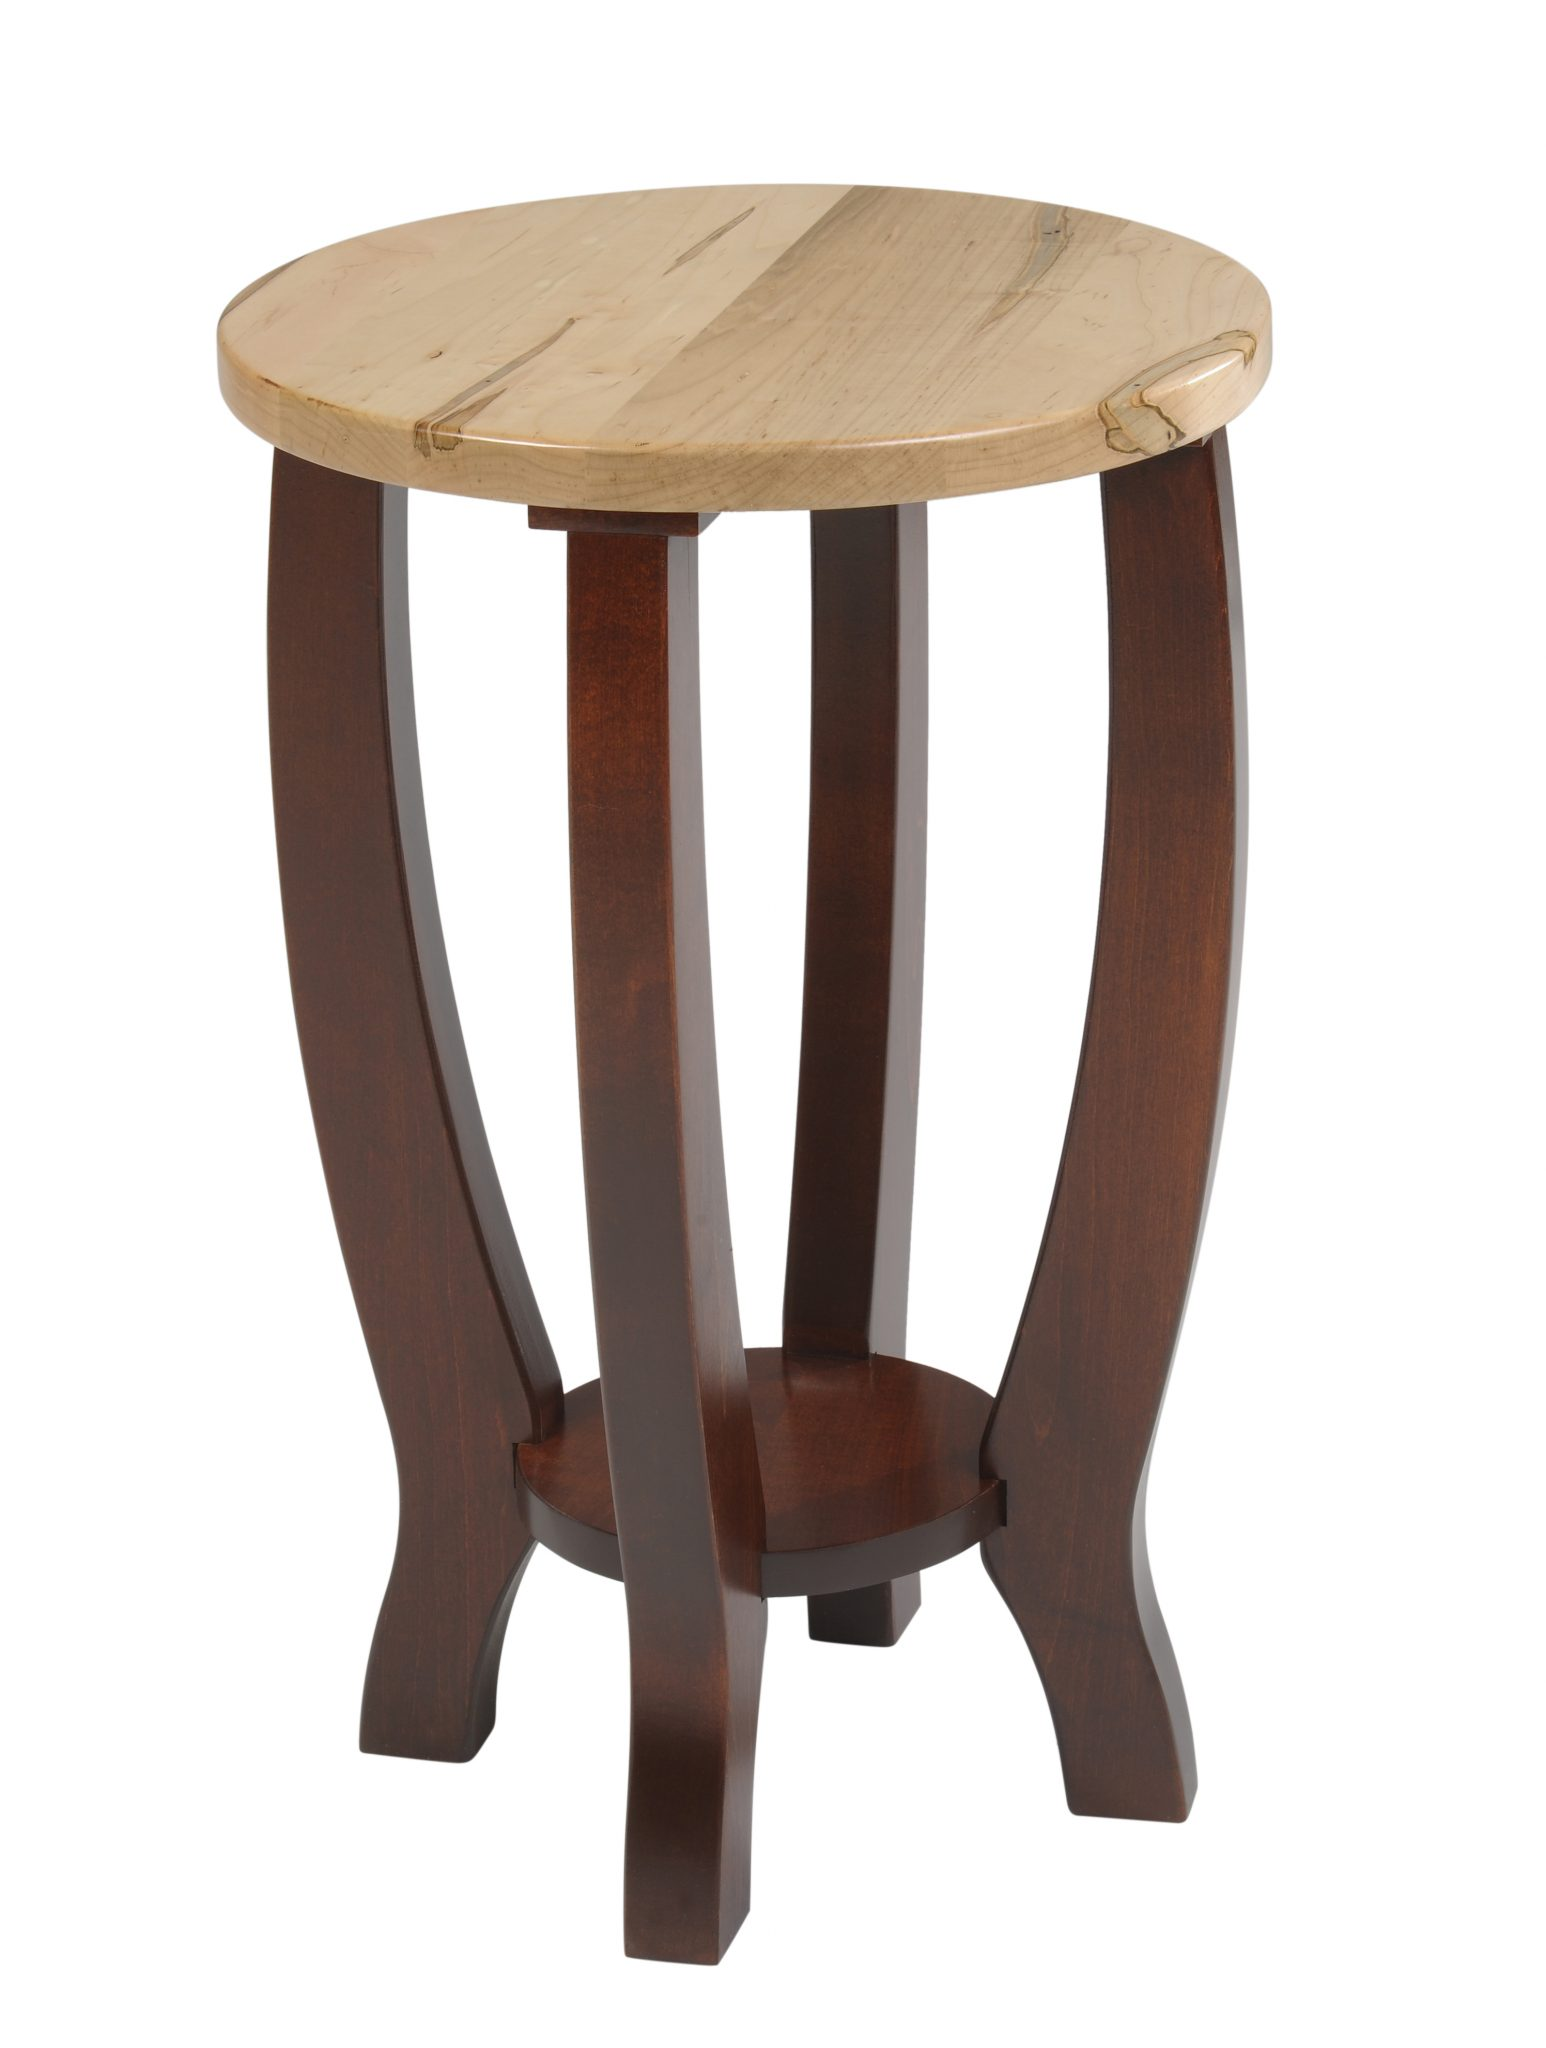 Modern Chairside Table Yt240 New Port Round End Table Two Tone Occasional Round